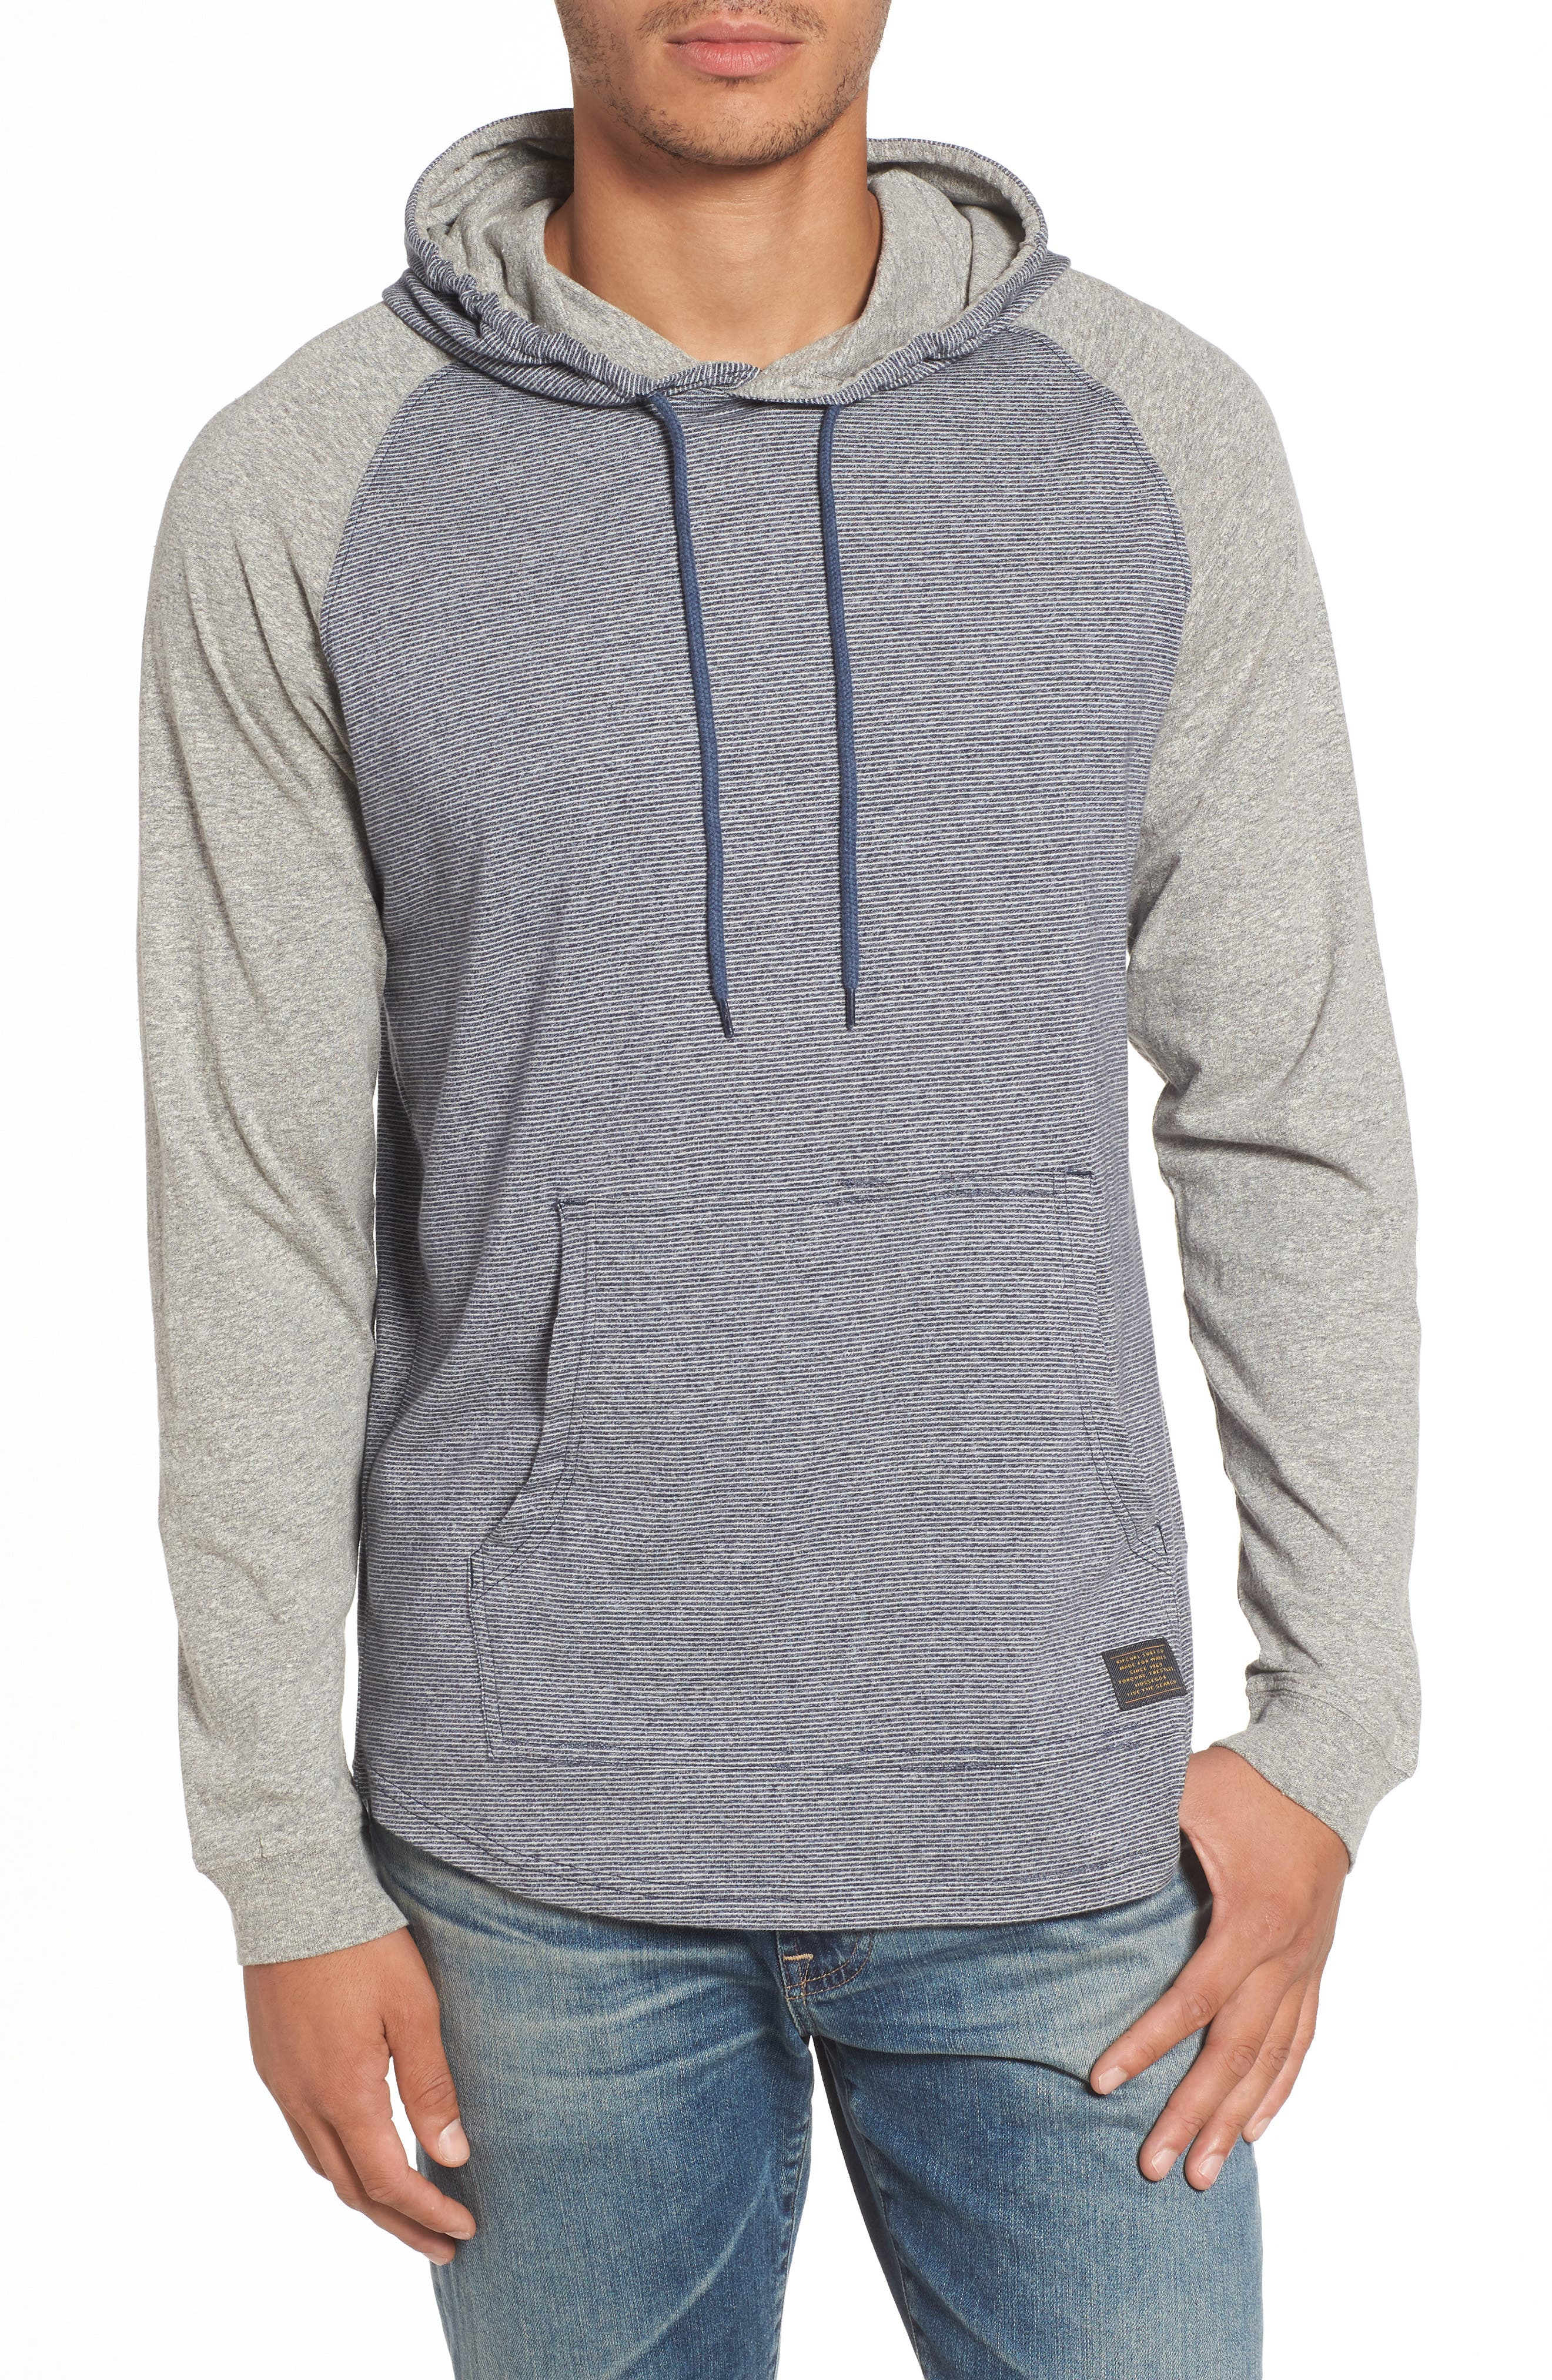 All In Hoodie,                         Main,                         color, 410